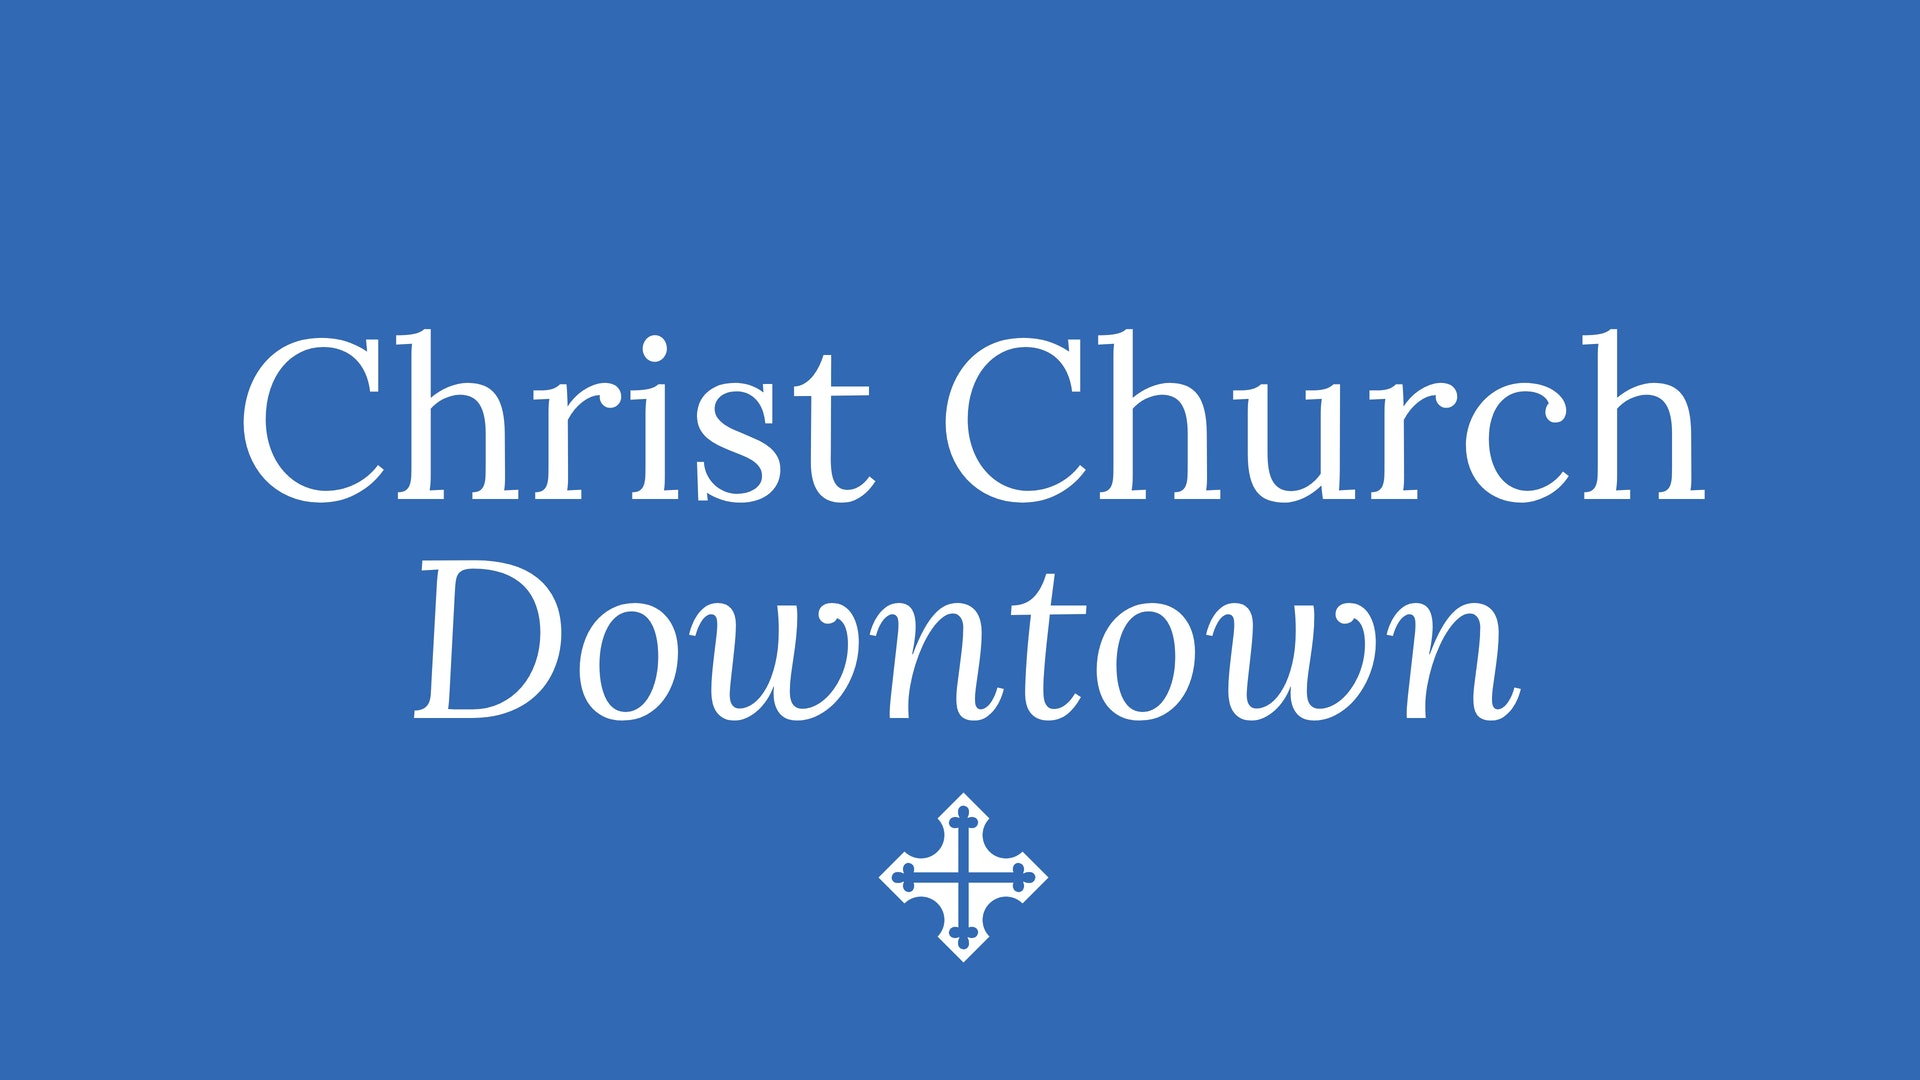 The Coming of our Lord Jesus Christ - Christ Church